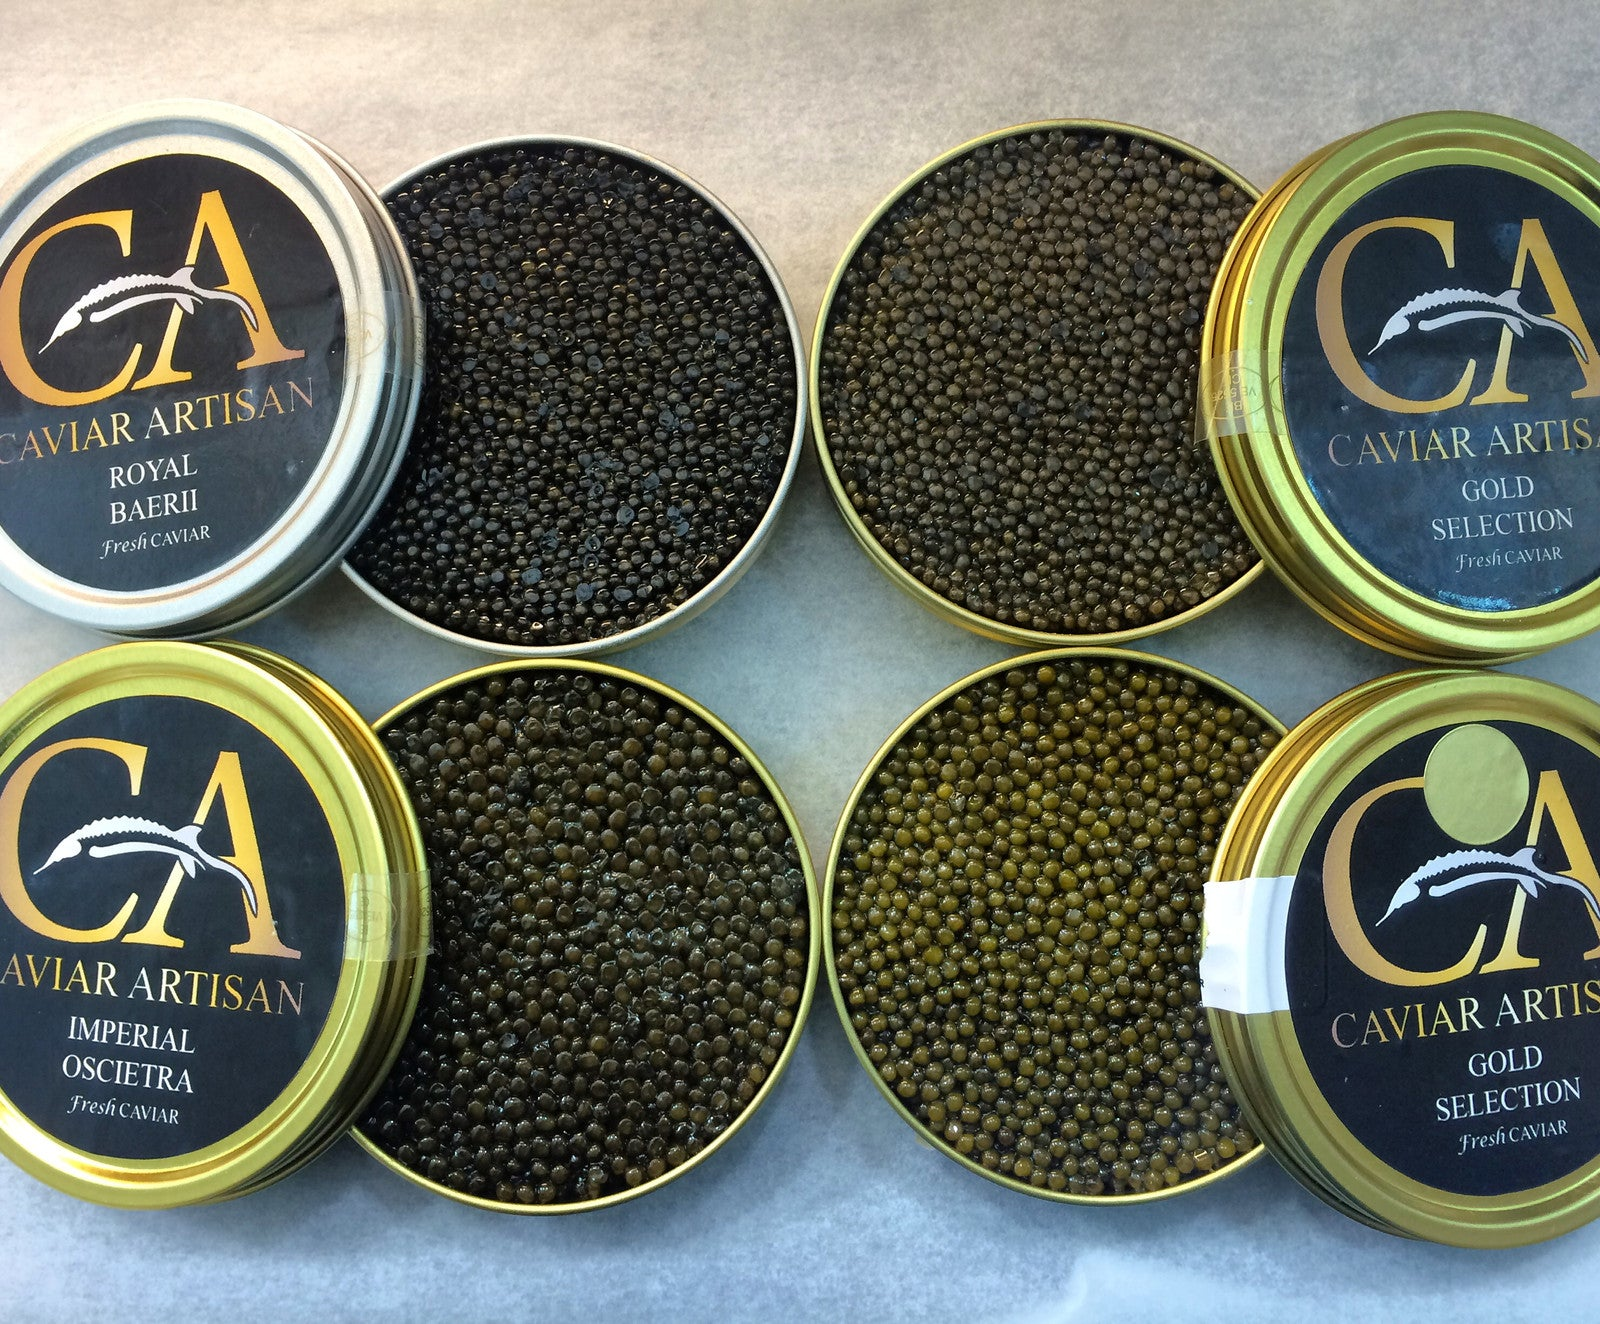 Buy caviar online in the UK at Caviar artisan. On demand Food delivery service.